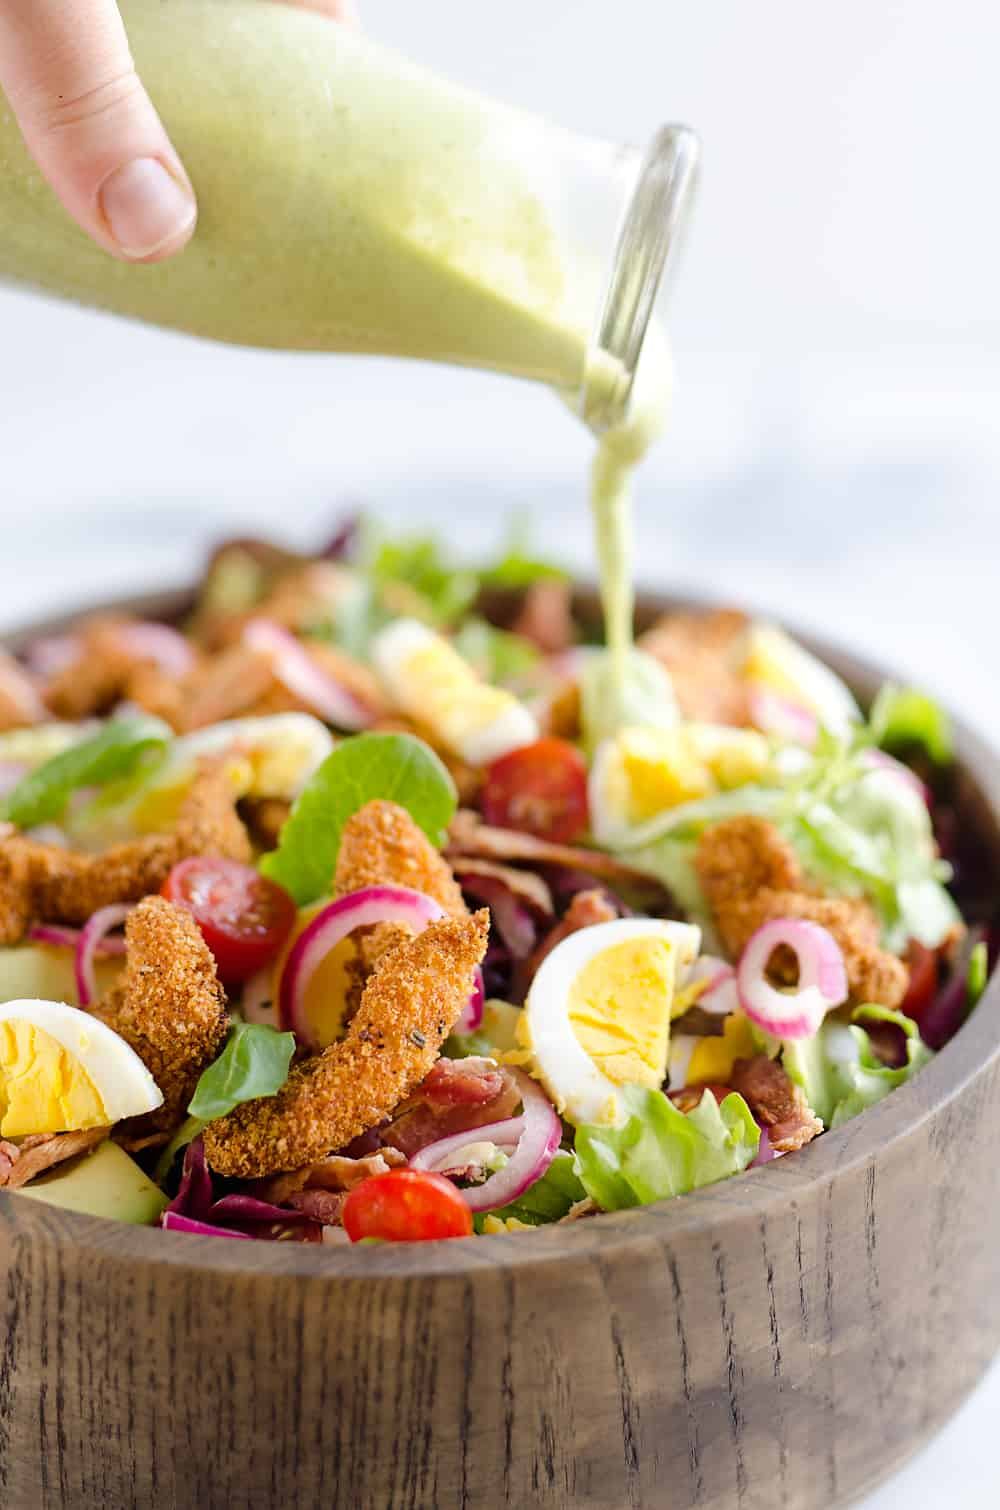 Crispy Chicken & Avocado Cobb Salad is an easy 20 minute salad recipe made in your Airfryer with Gold'n Plump Chipotle Adobo SHAKERS, bacon, veggies, lightly pickled onions and a creamy Avocado Lime Green Goddess Sauce. This hearty salad is a healthy dinner idea bursting with bold flavor and crunch!